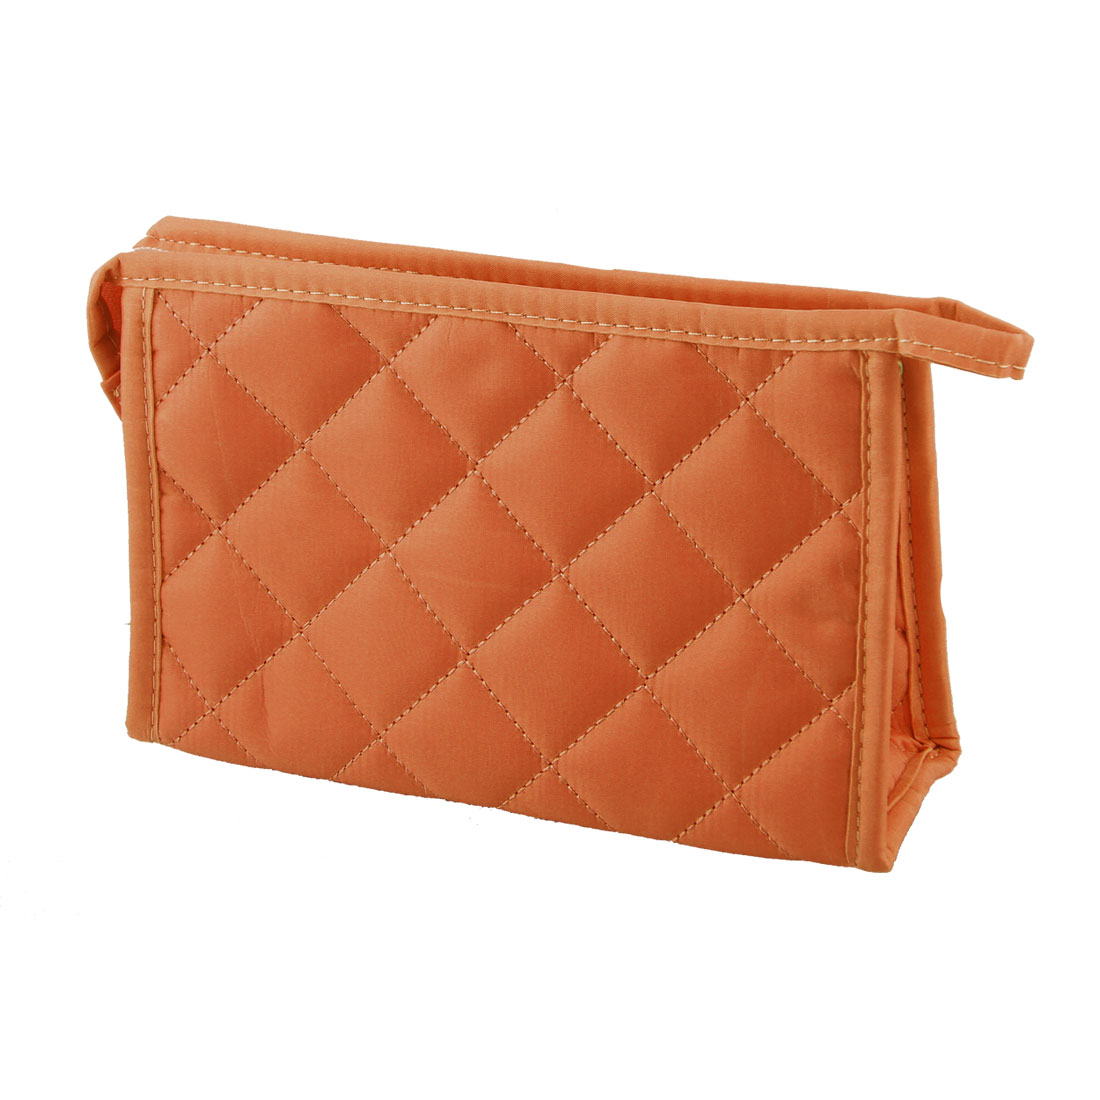 "7.5"" Long Grid Pattern Rectangle Shape Makeup Zipper Bag Orange for Woman"